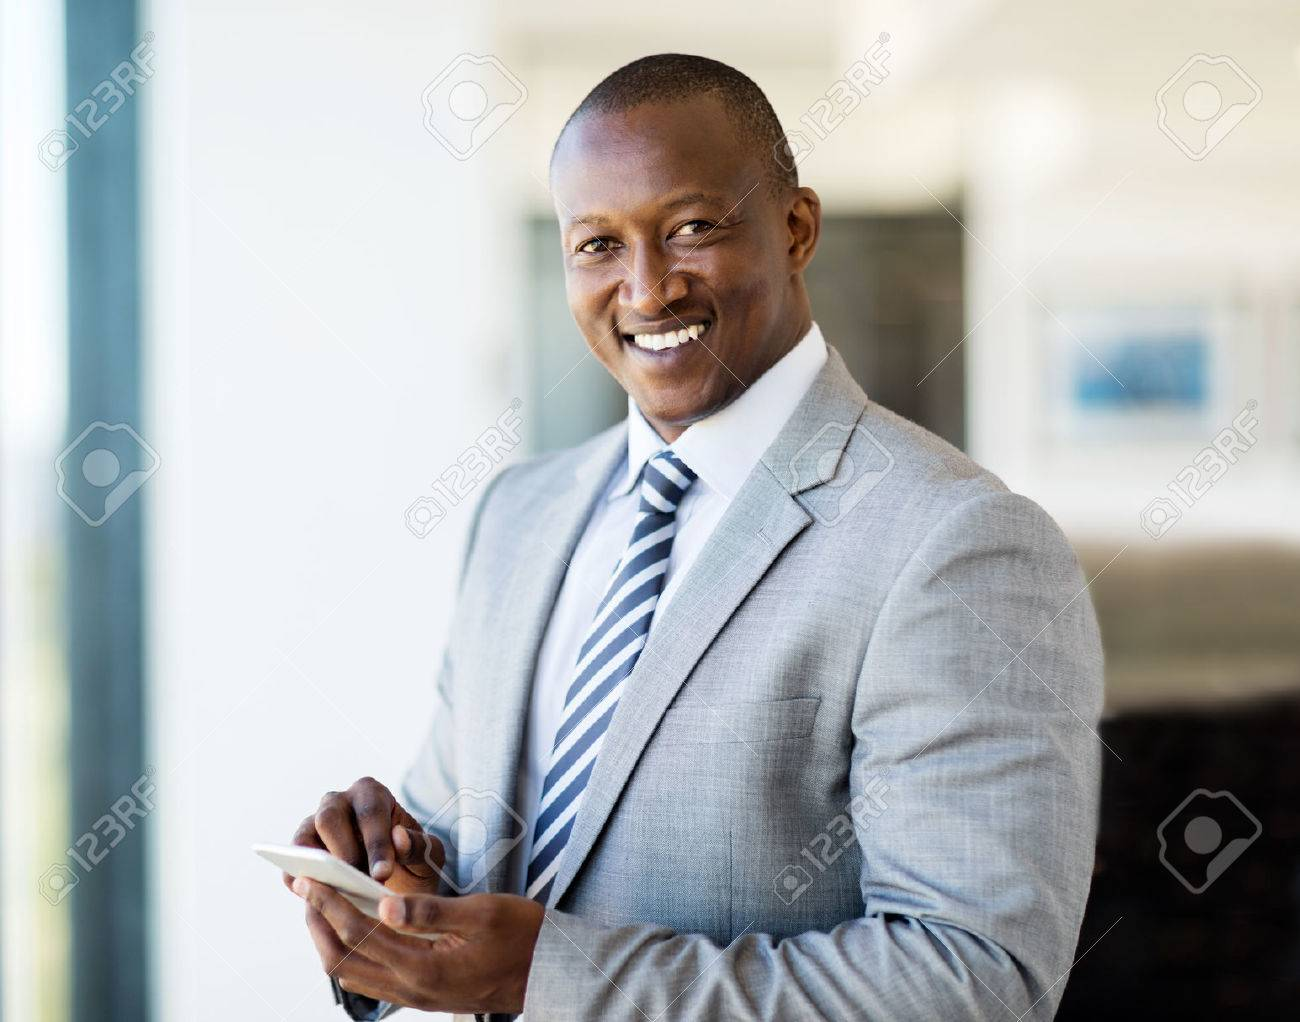 portrait of smiling african businessman using smart phone in office - 53100612